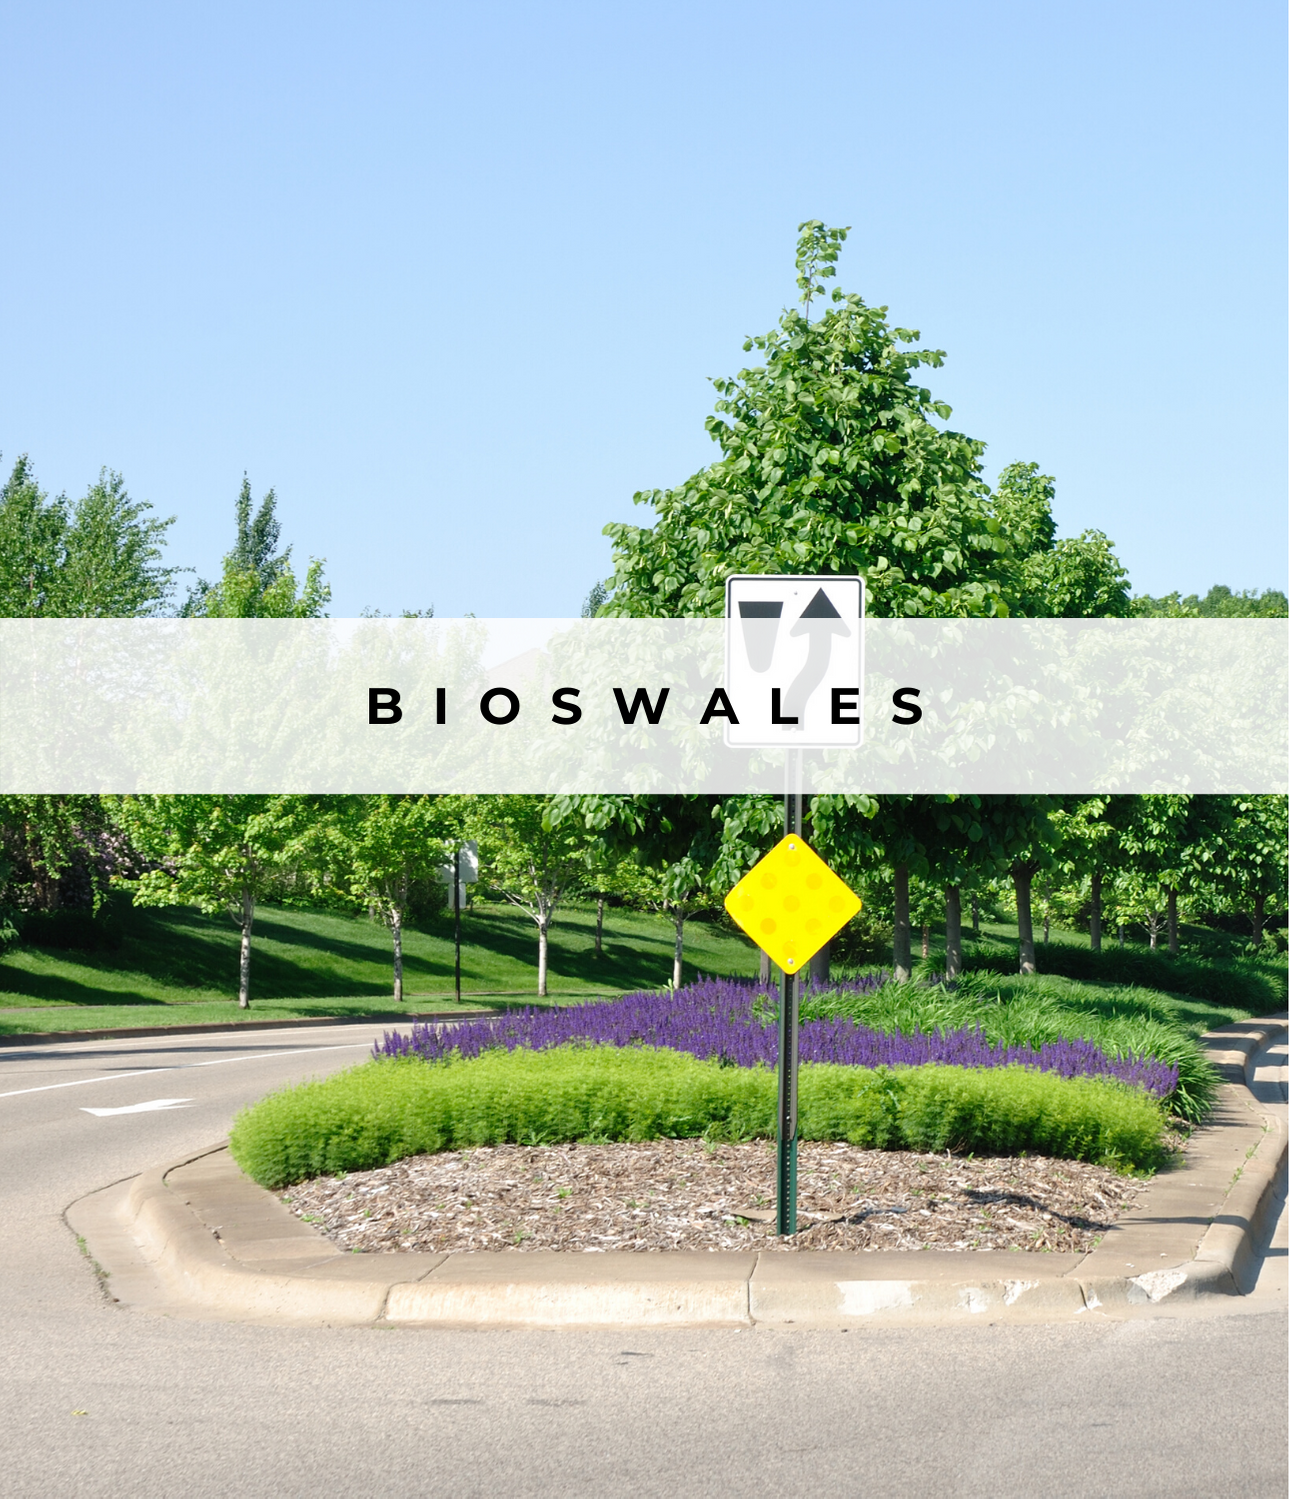 Image of Bioswales